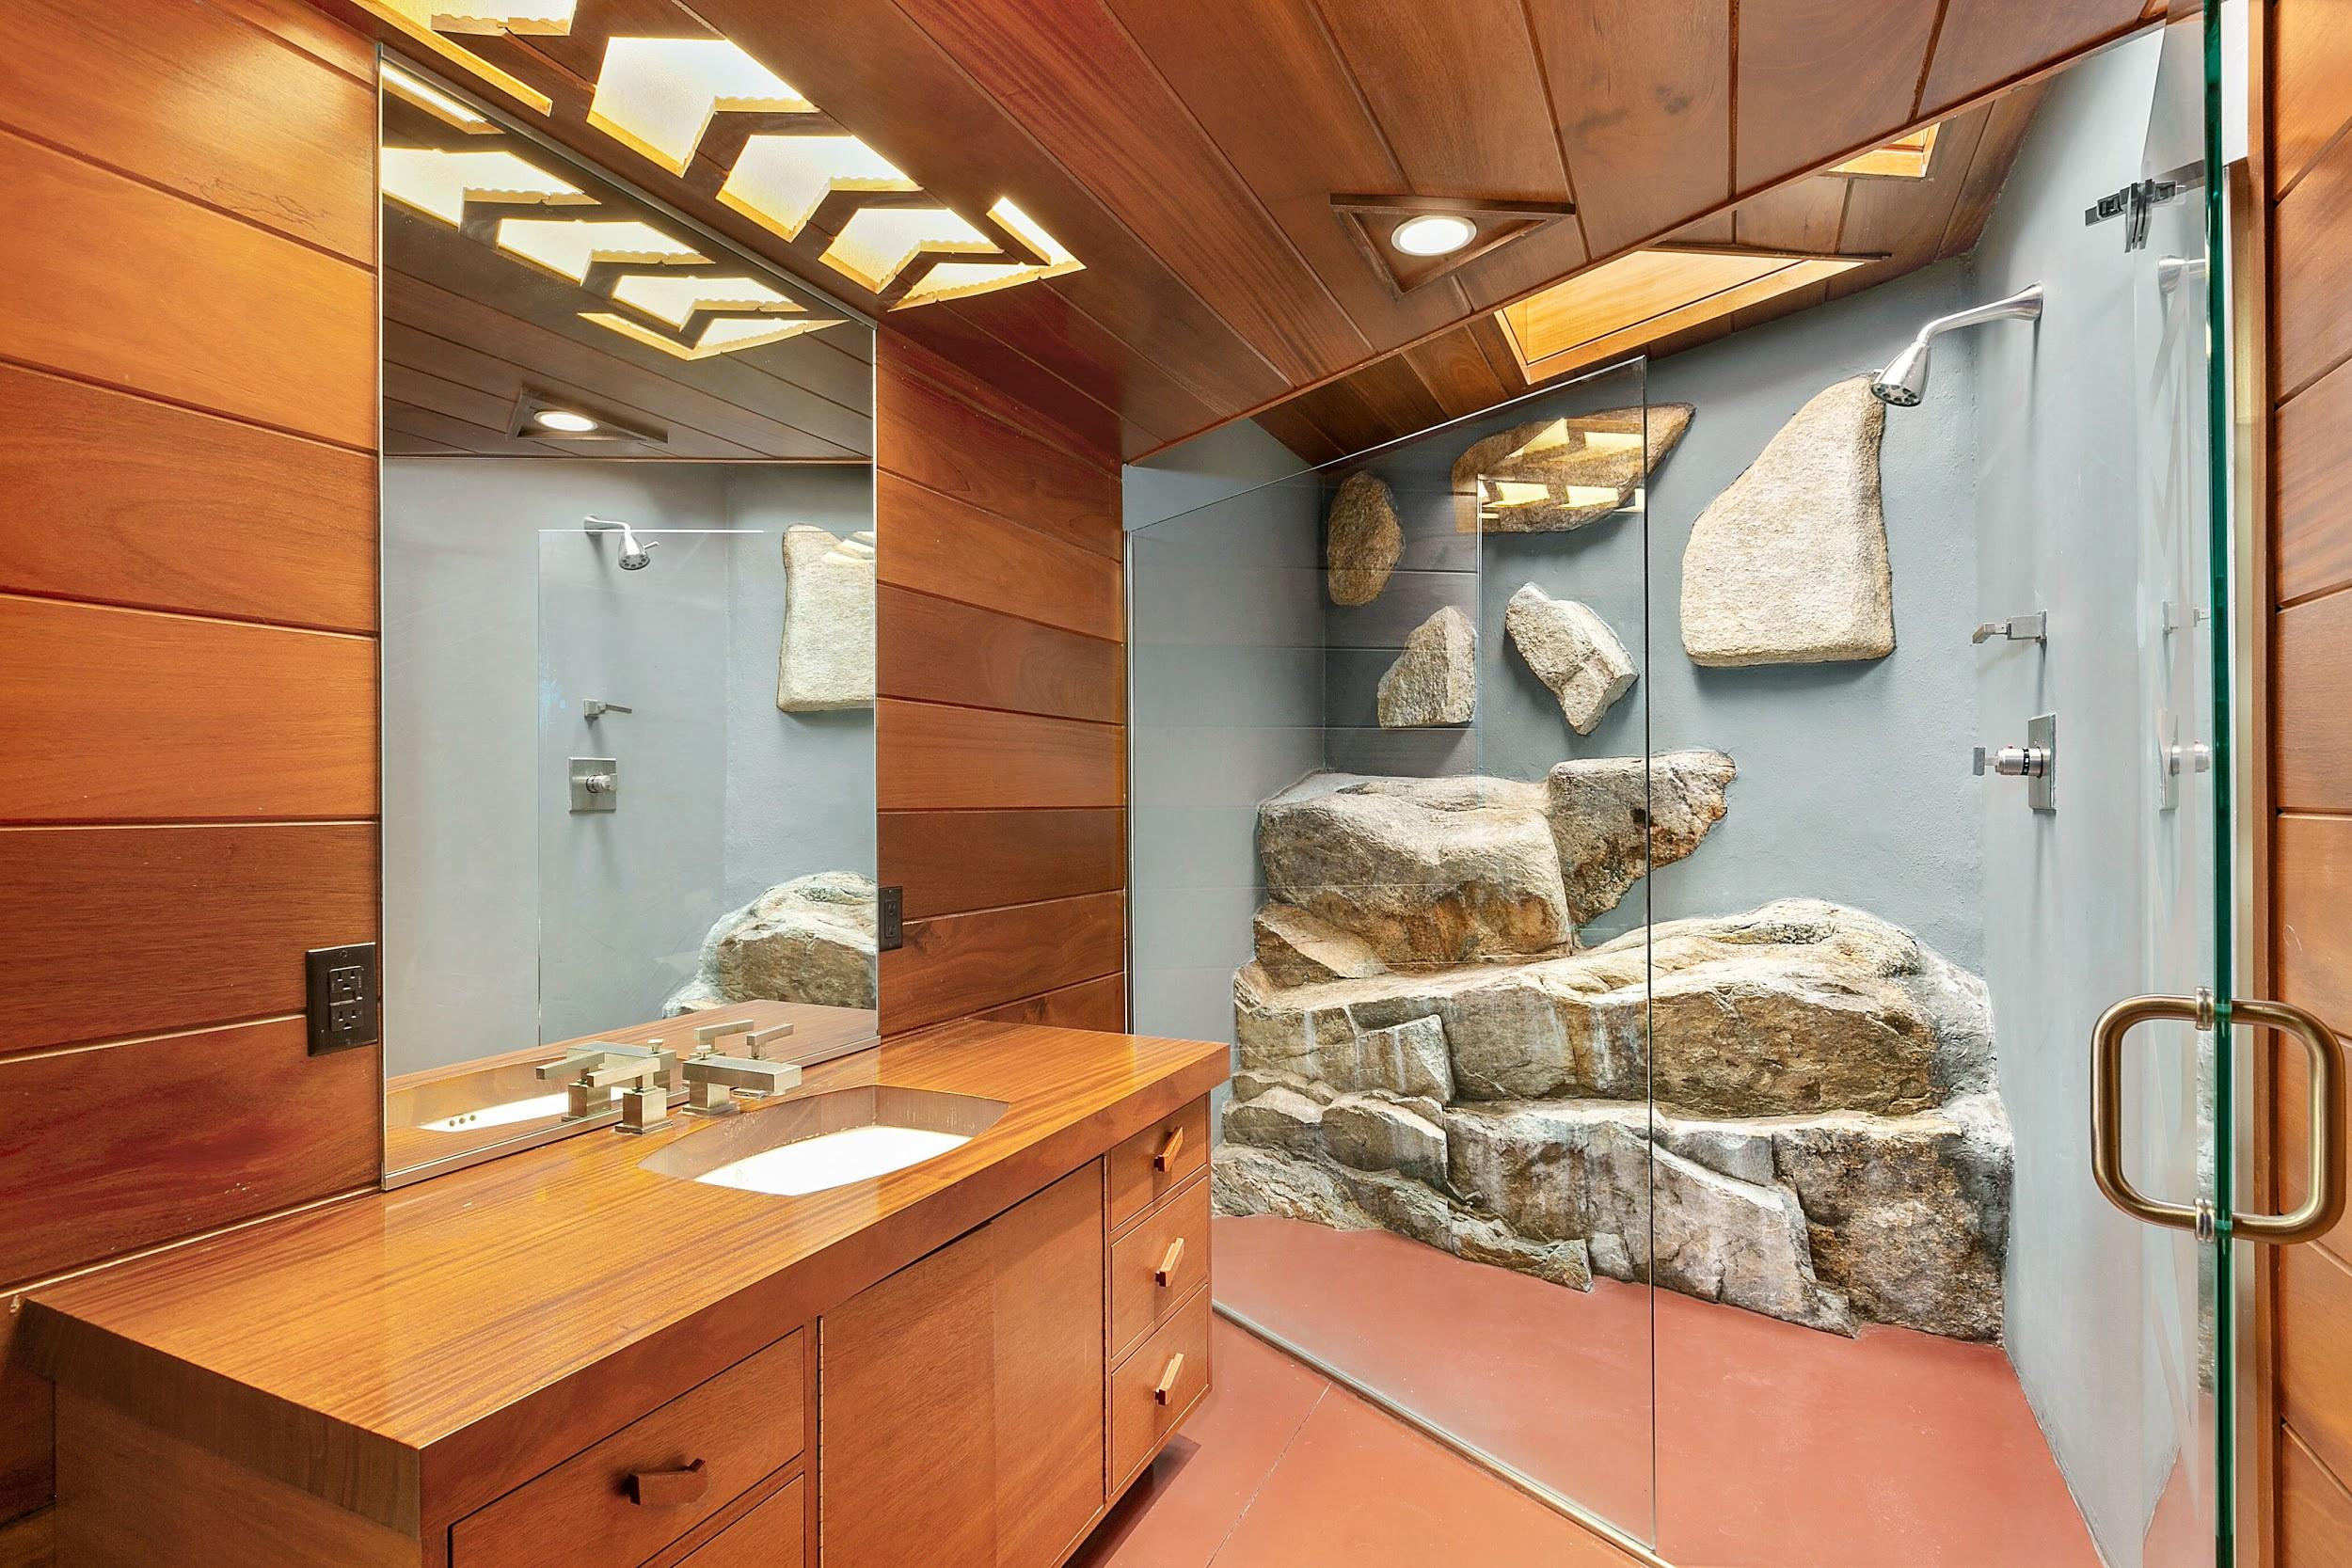 A Private Island With Two Historically Significant Frank Lloyd Wright Homes